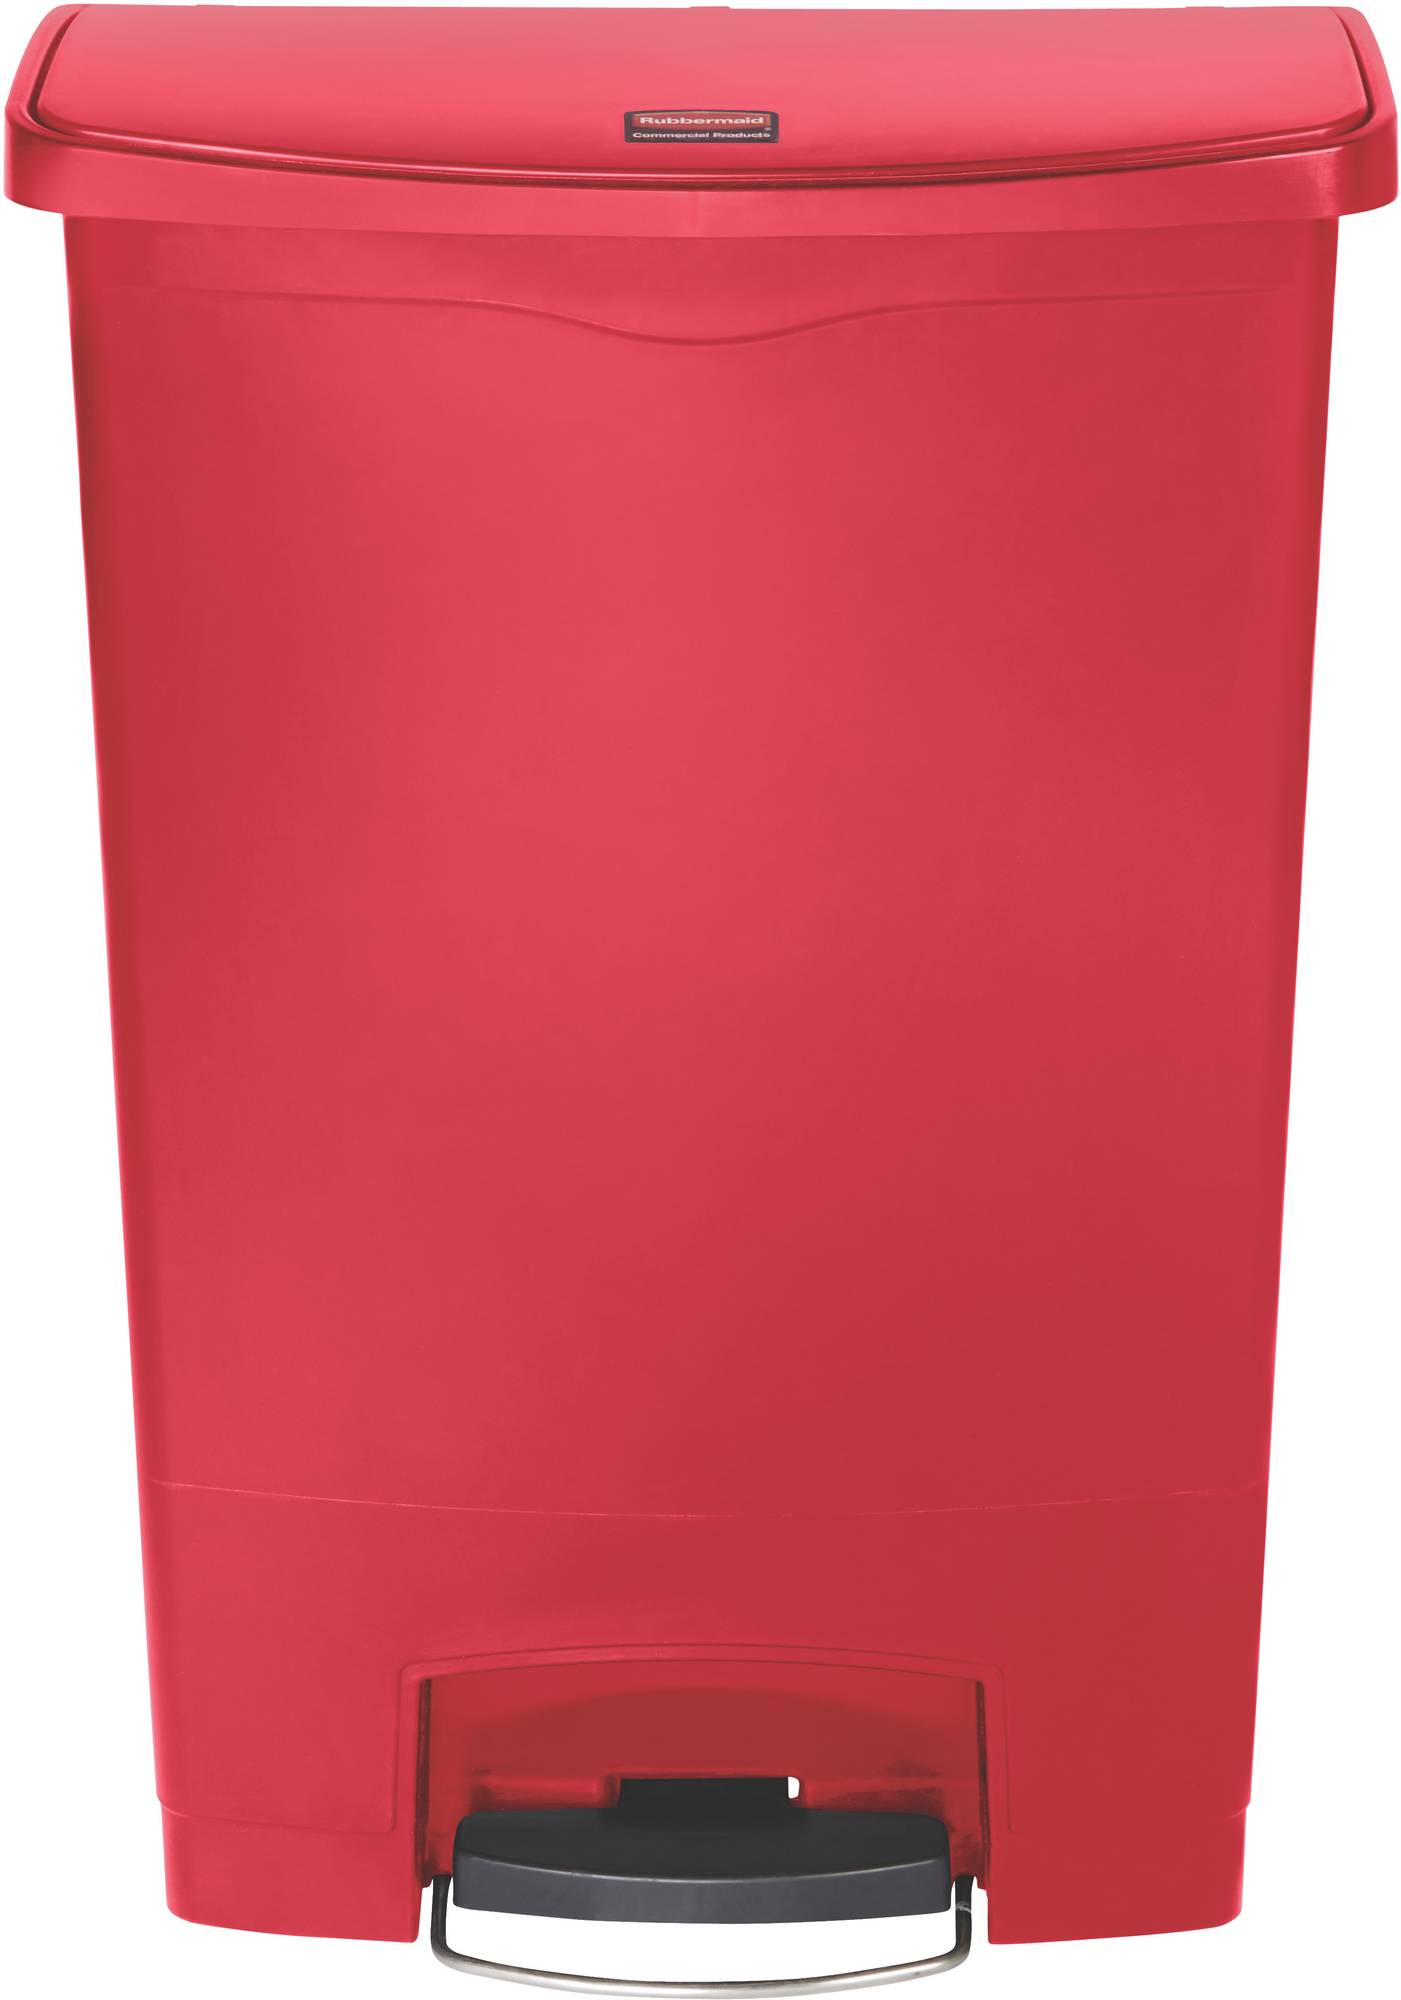 Rubbermaid Slim Jim Step On Container, Front Step mit 90 Liter Füllmenge in Rot, breites Fußpedal